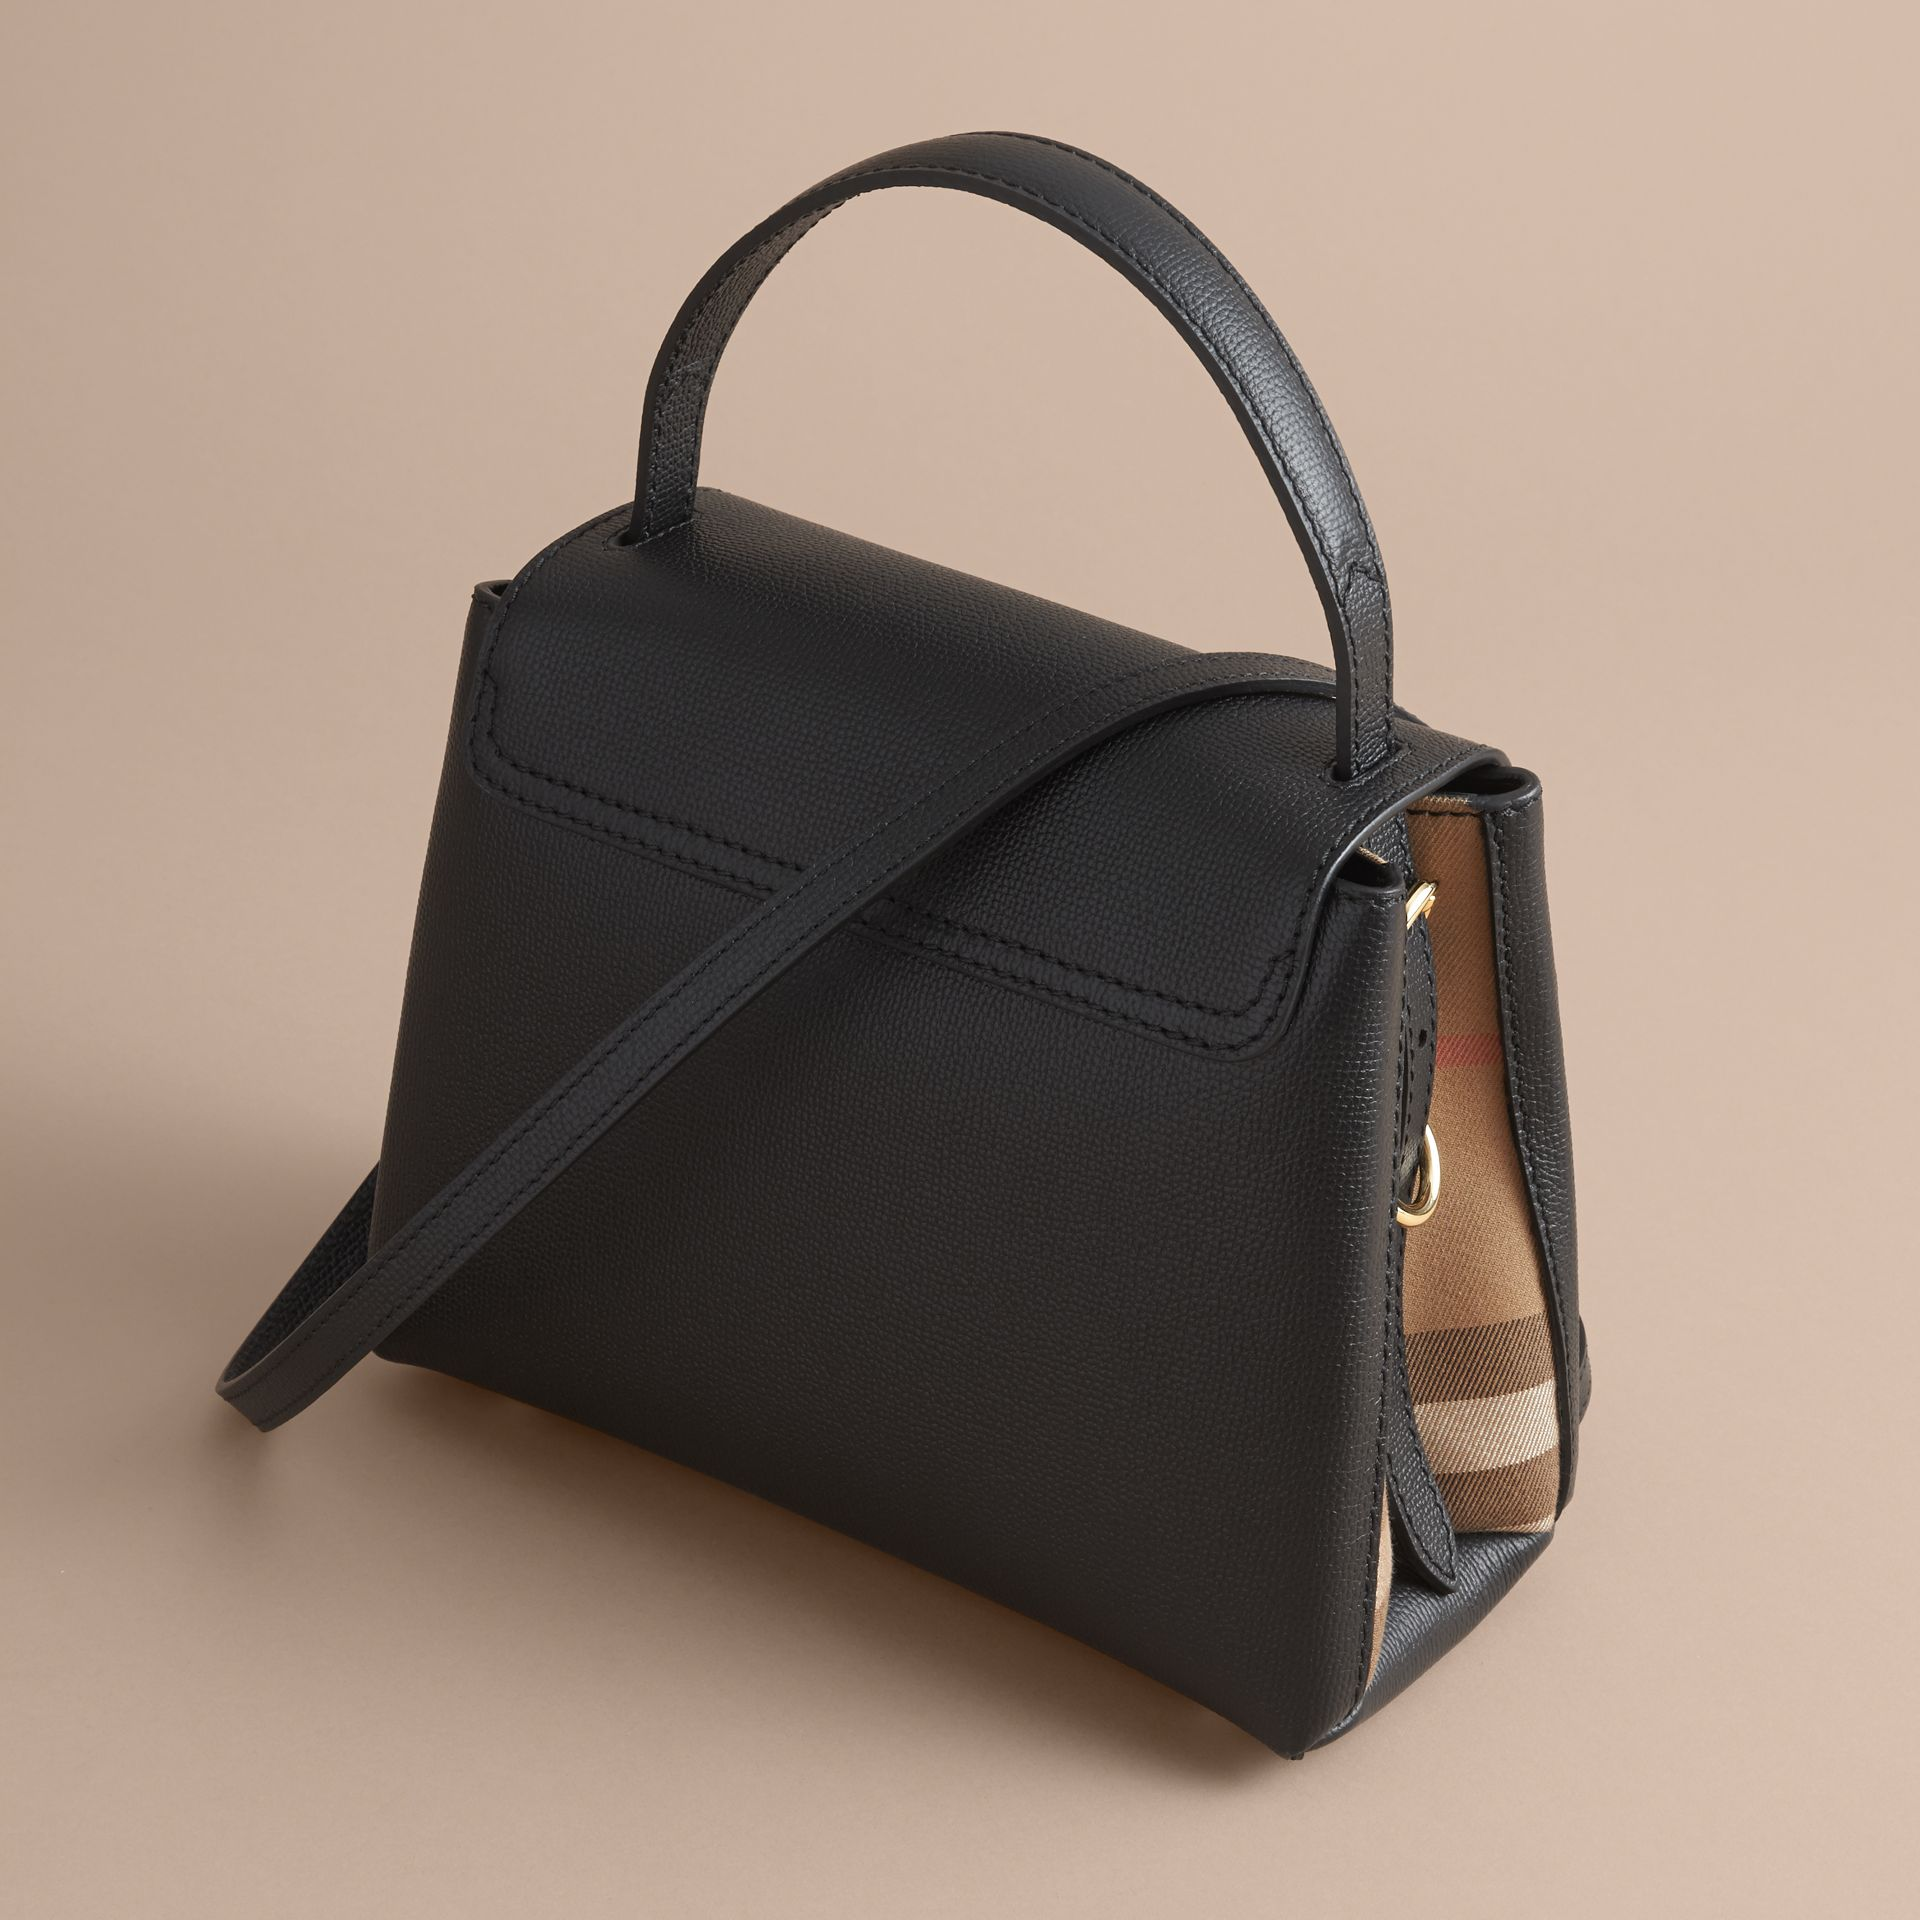 Small Grainy Leather and House Check Tote Bag in Black - Women | Burberry - gallery image 4